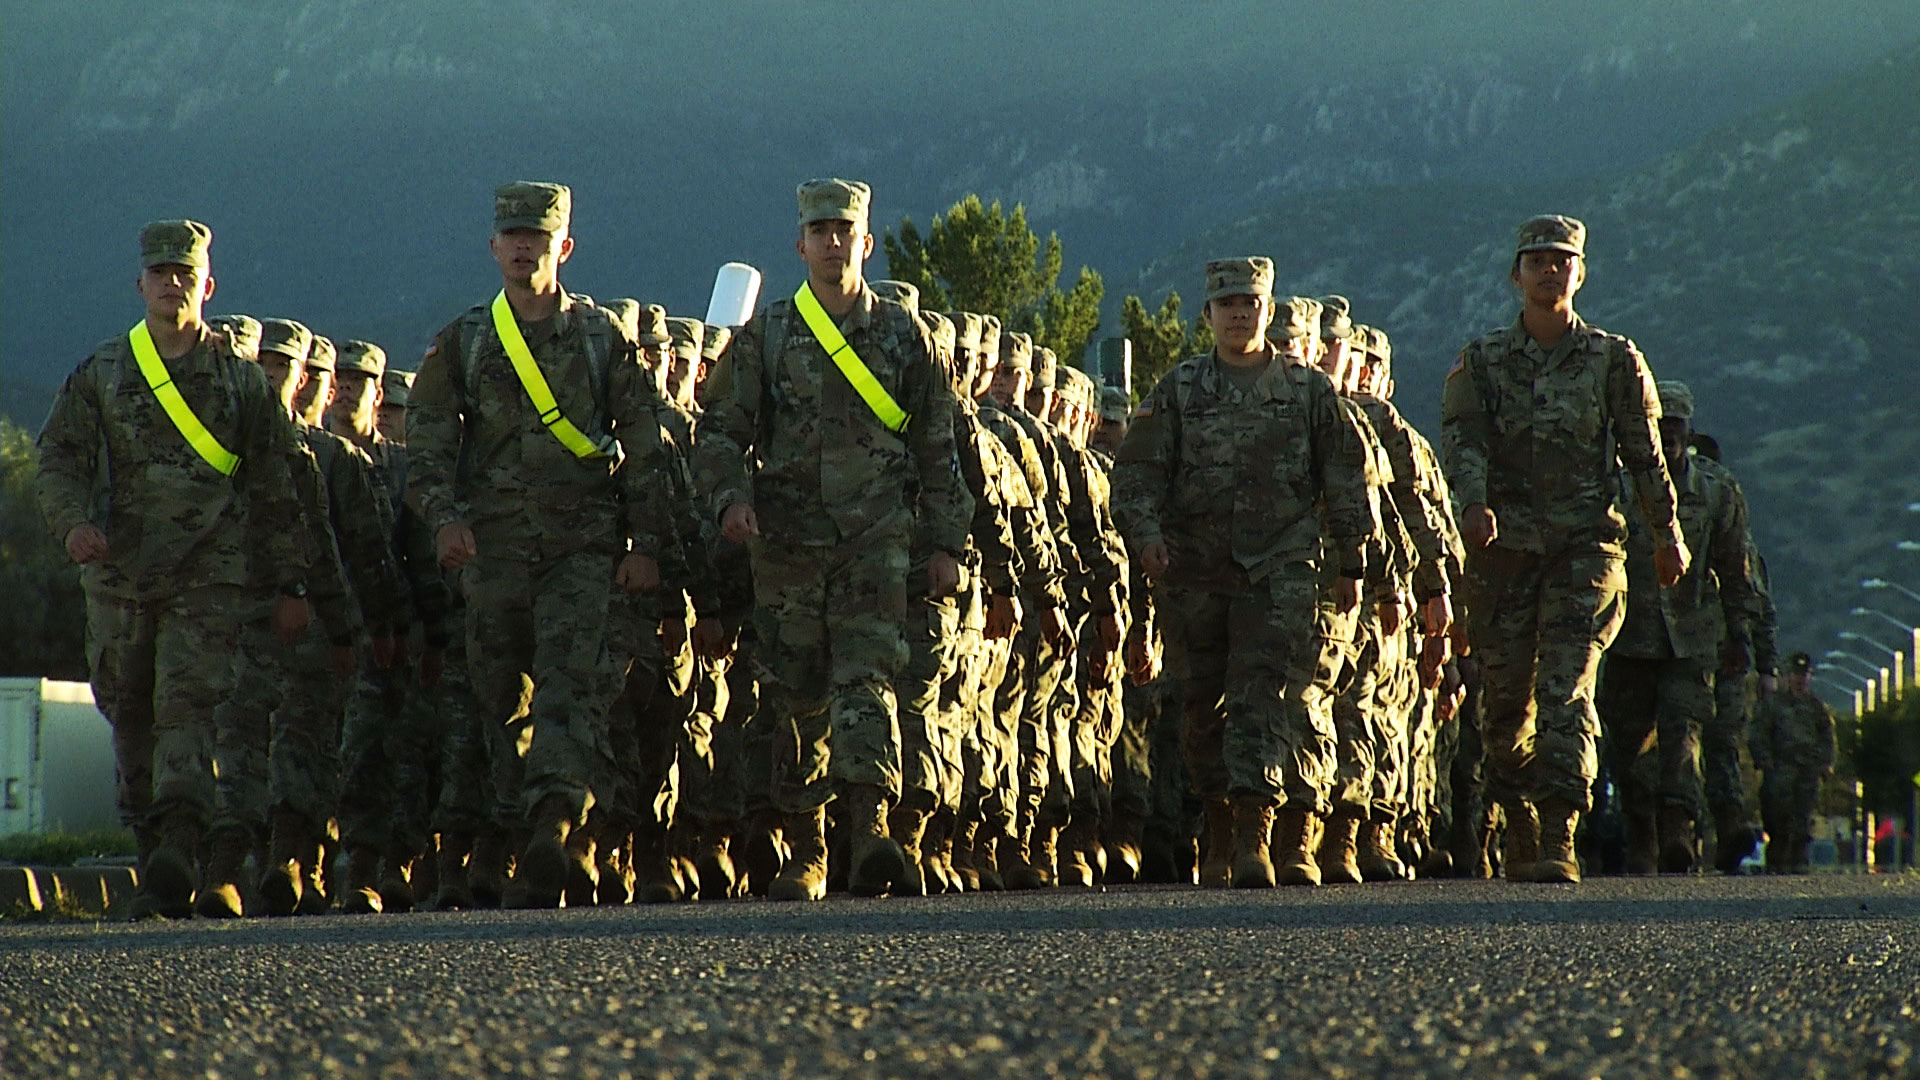 Soldiers march in formation at Fort Huachuca in October 2019.